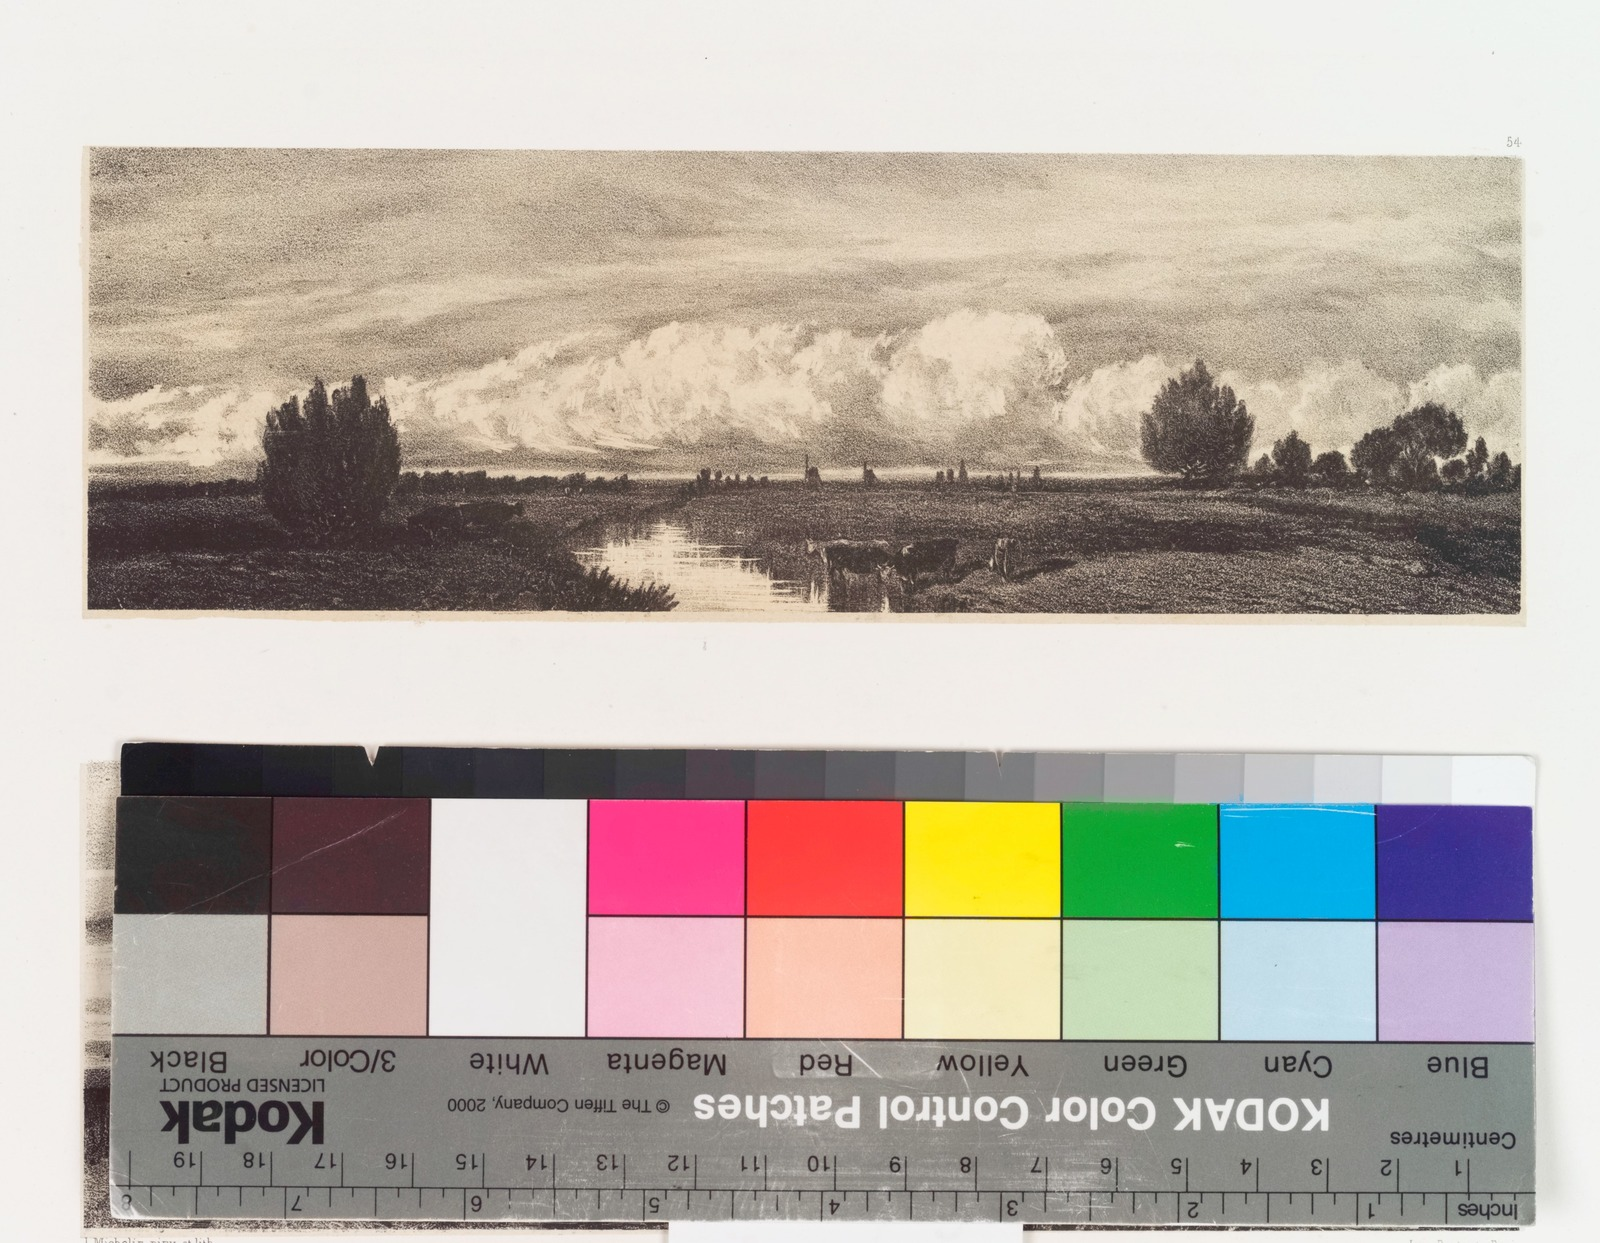 [Meadow with scattered trees, cows in stream in center.]